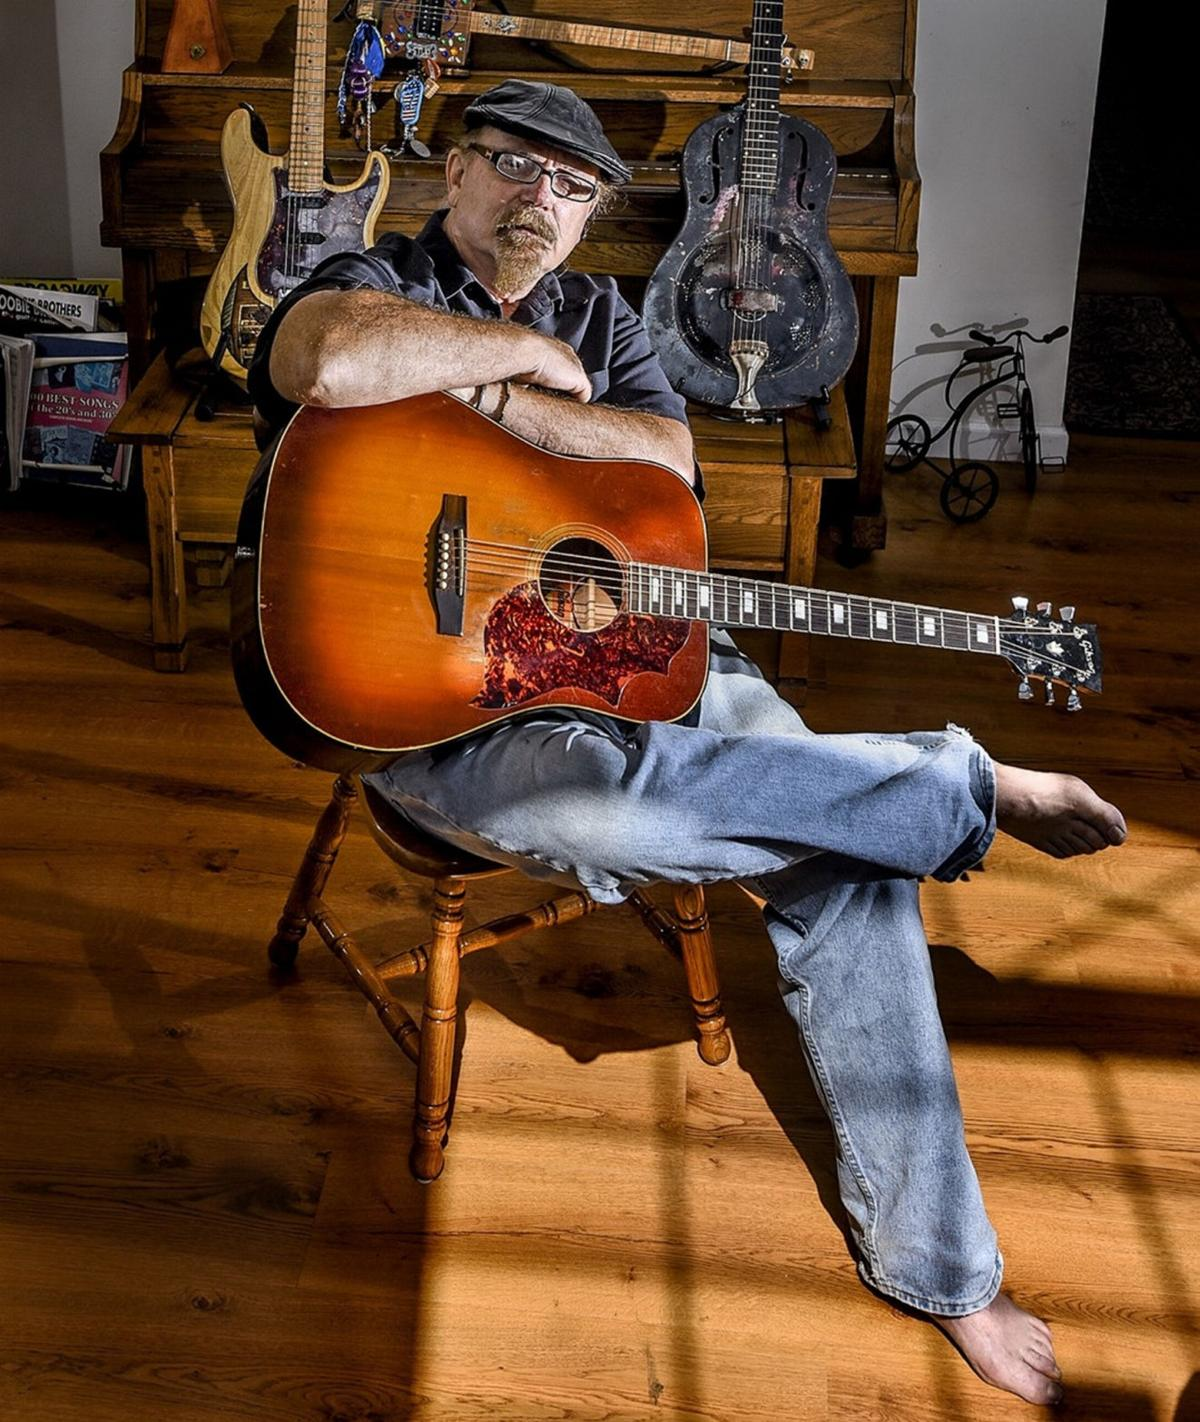 With dogged determination, bluesman pens 'Bubba' tale